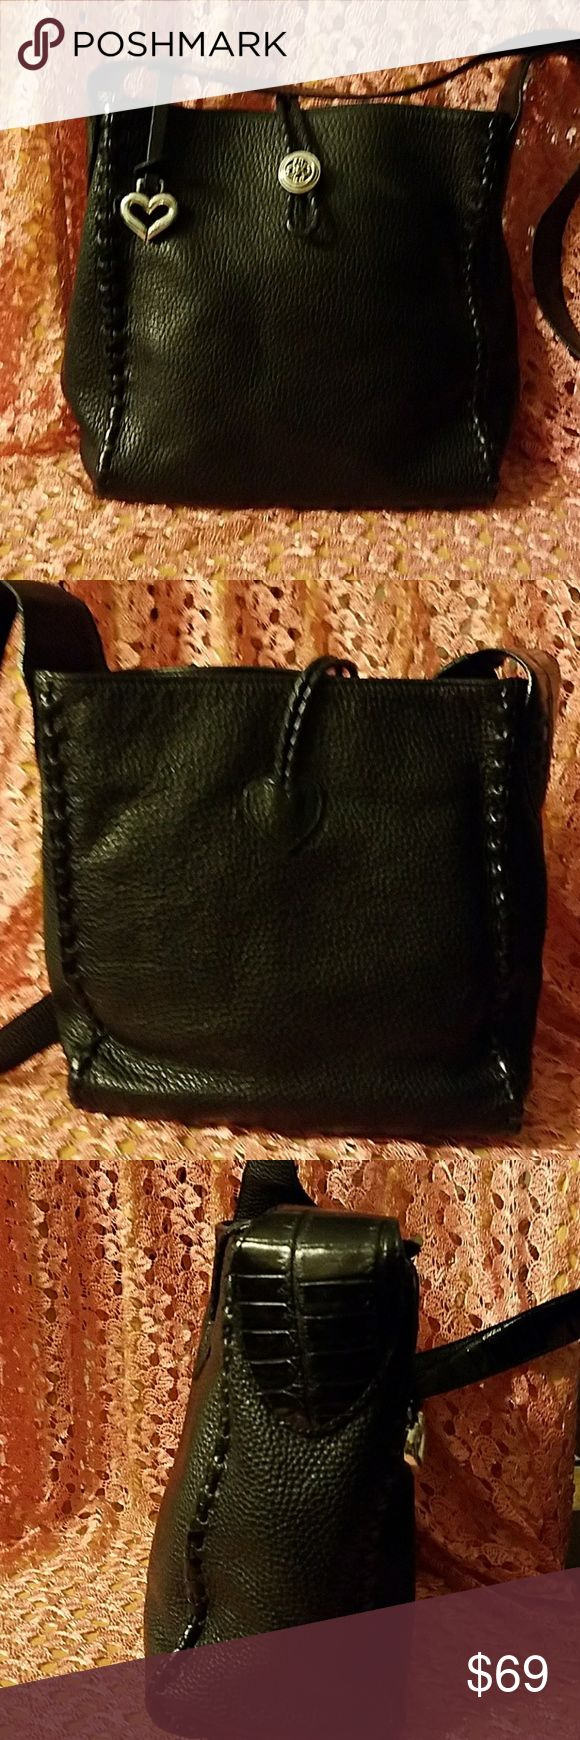 Brighton black pebbled leather bag Adorable bag,texture mix croc, pebbled leather.stitching on all four corners,silver Brighton hardware, keychain, fob.no signs of wear on the leather.bottom lining is a bit dirty but not bad Brighton Bags Shoulder Bags